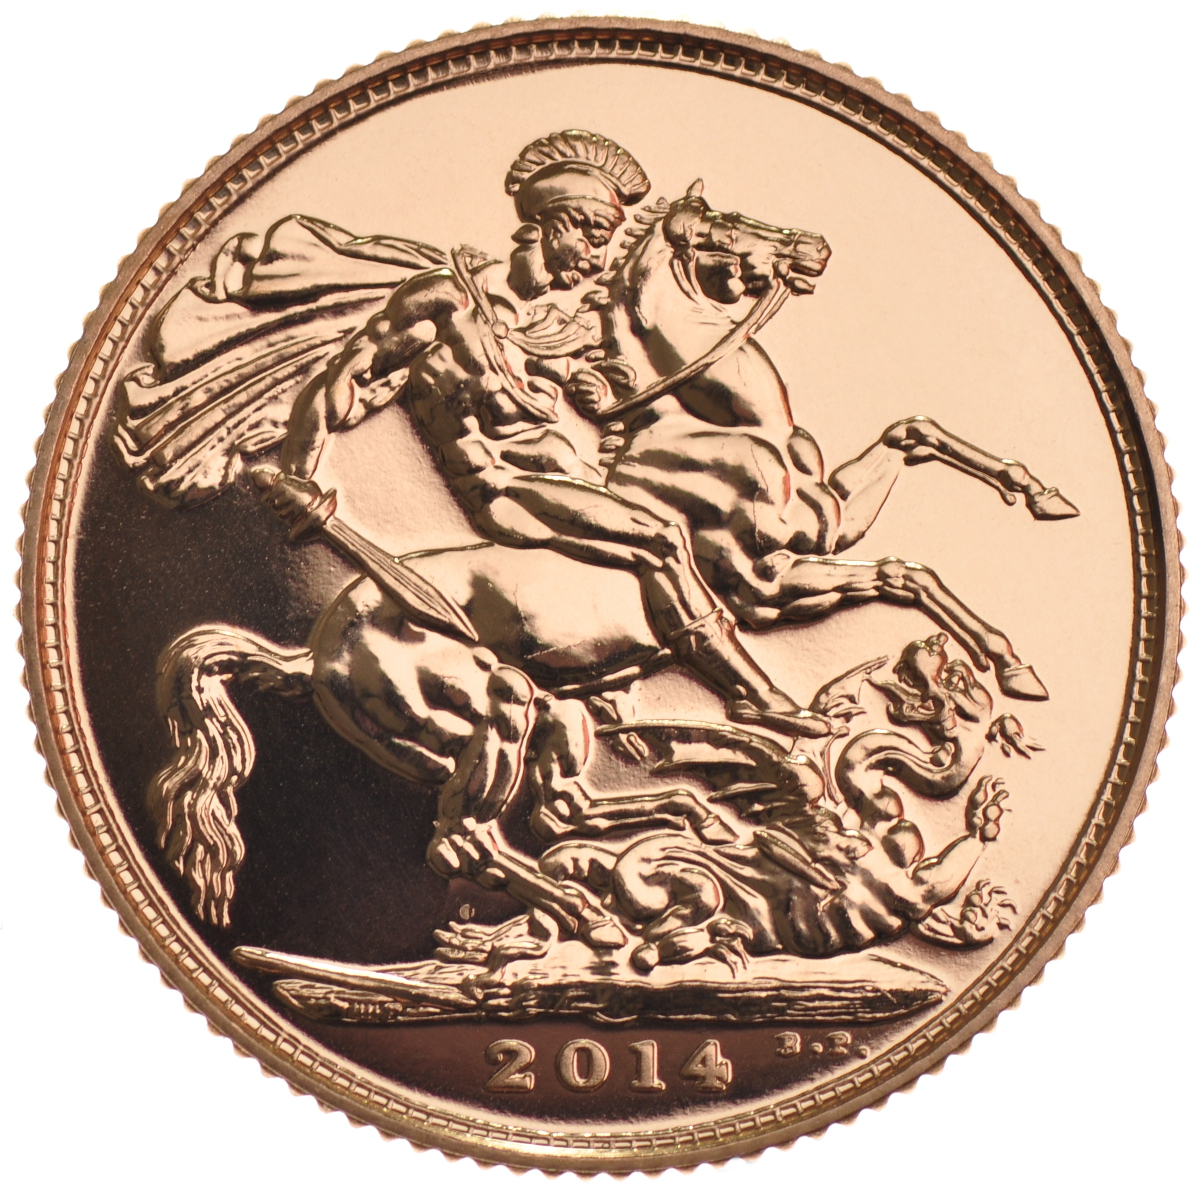 2014 Gold Sovereign